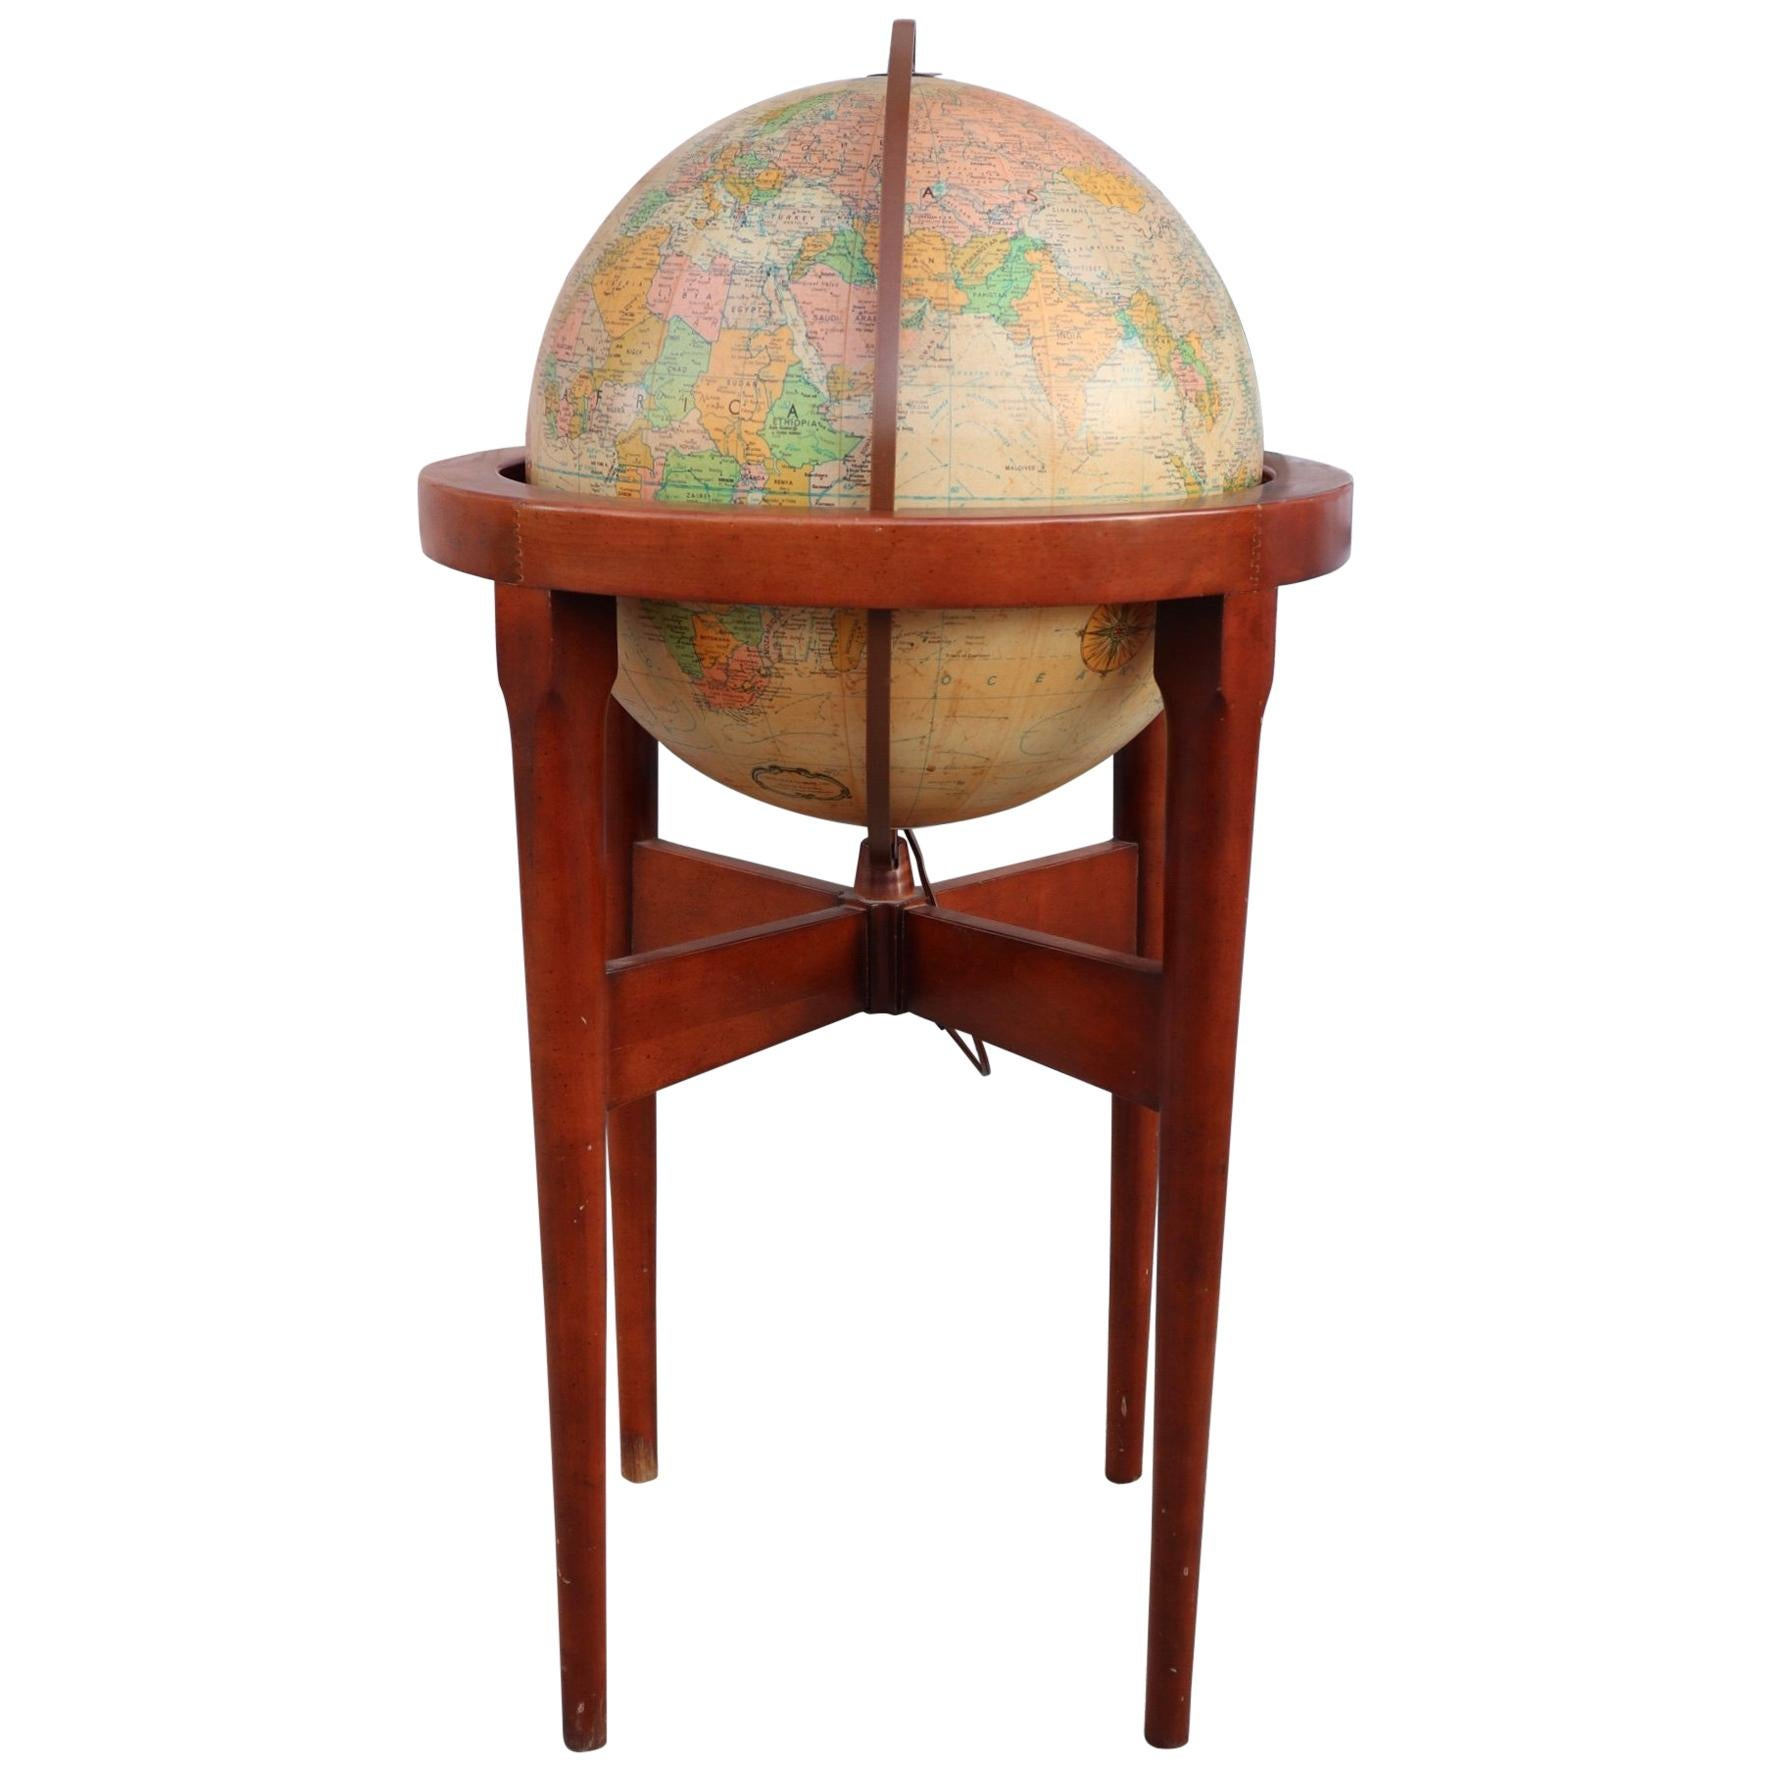 Paul McCobb Style Standing Glowing Globe on Modernist Frame by Replogle